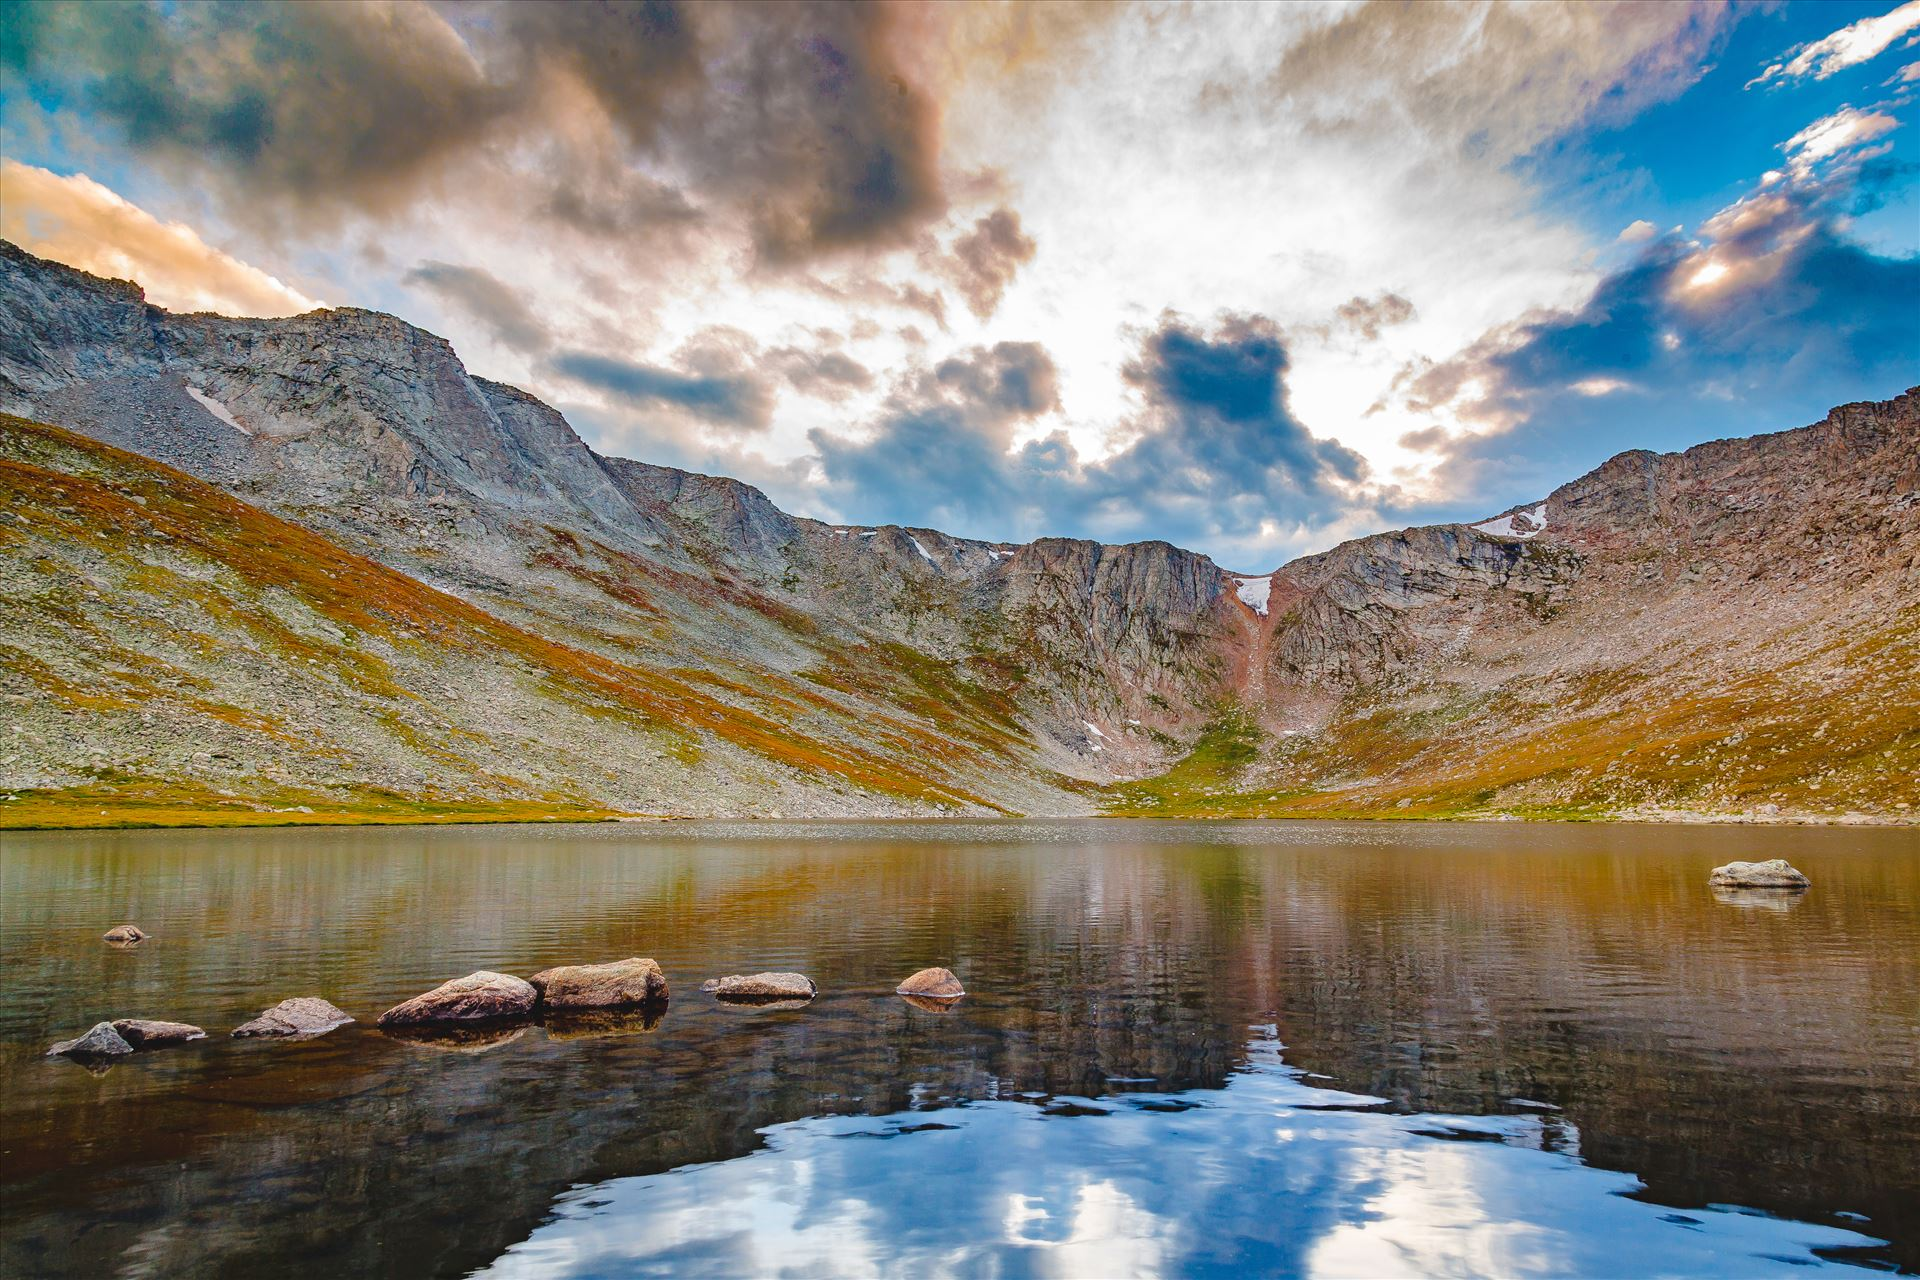 Summit Lake, Mt Evans III - Summit Lake at sunset, near the summit of Mt Evans, Colorado. by D Scott Smith